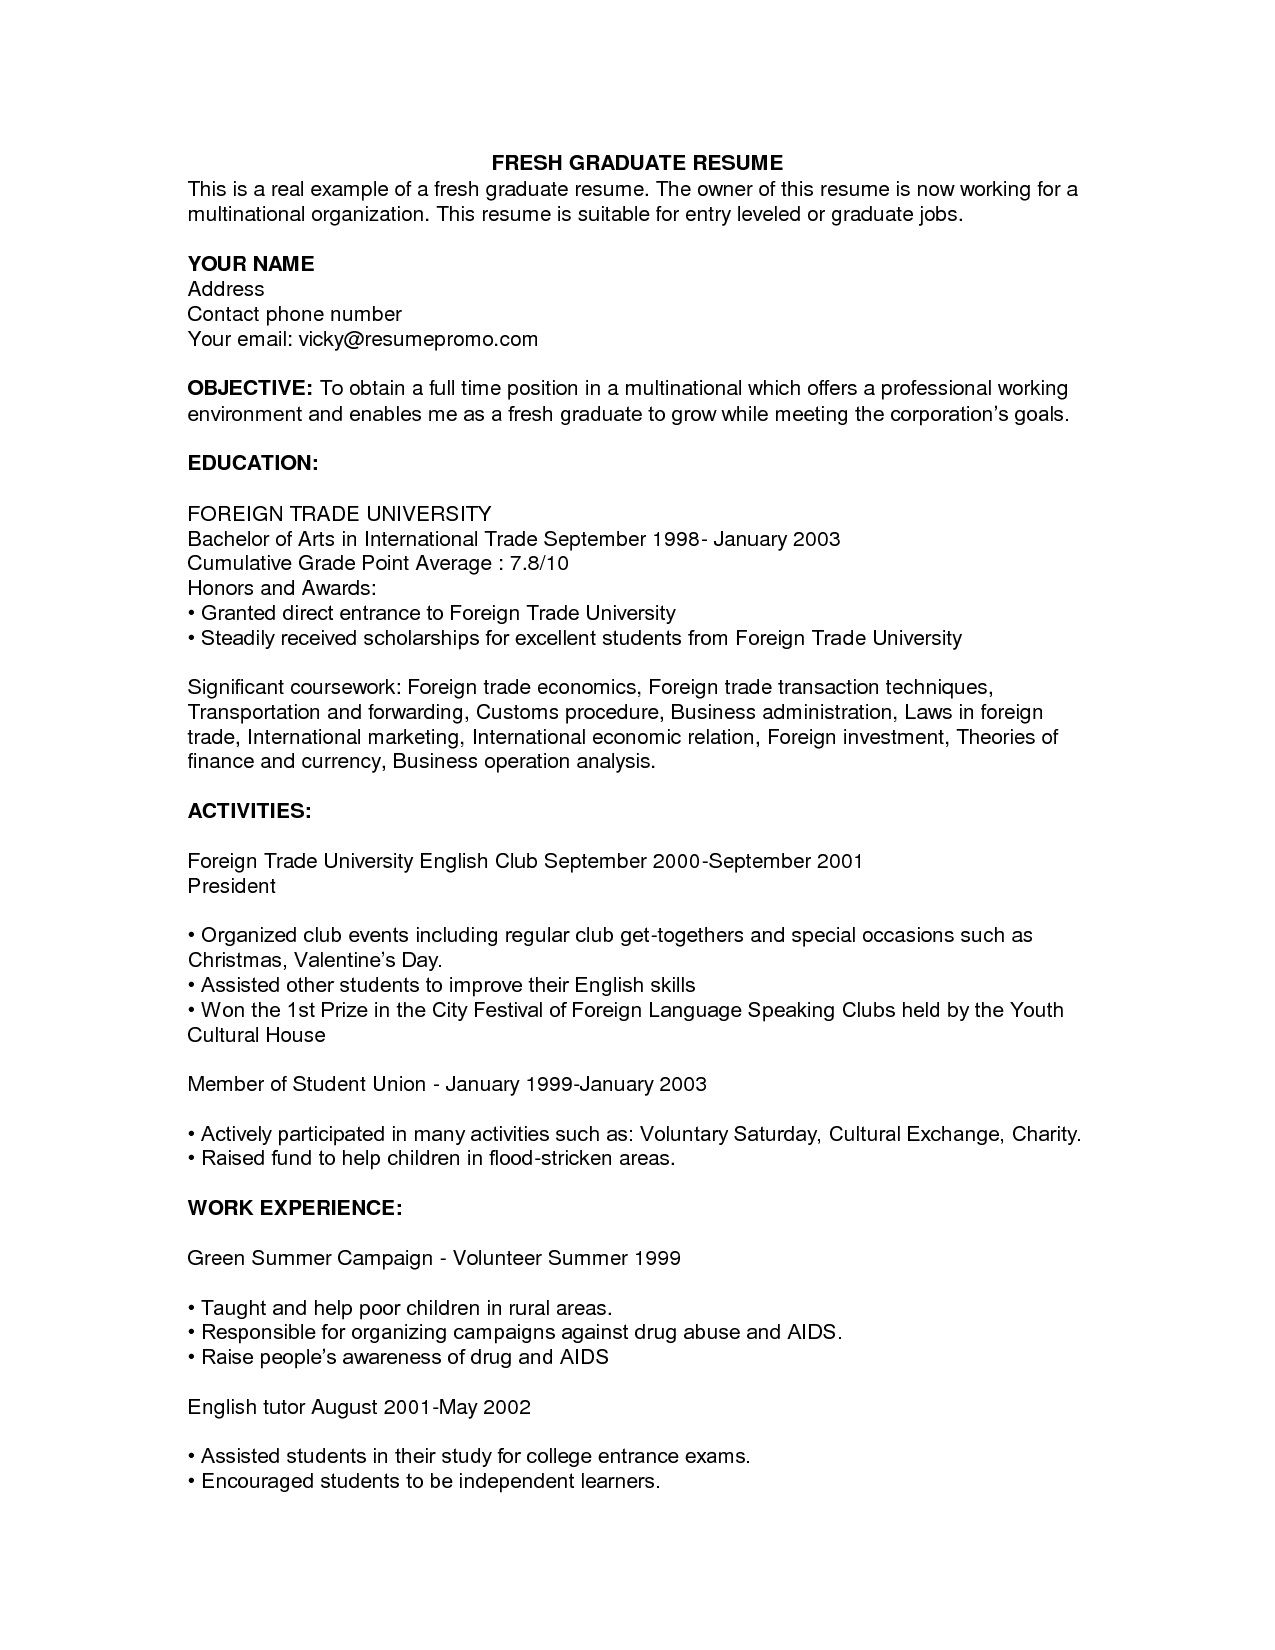 example of resume for fresh graduate jobresumesample com example of resume for fresh graduate are examples we provide as reference to make correct and good quality resume also will give ideas and strategies to